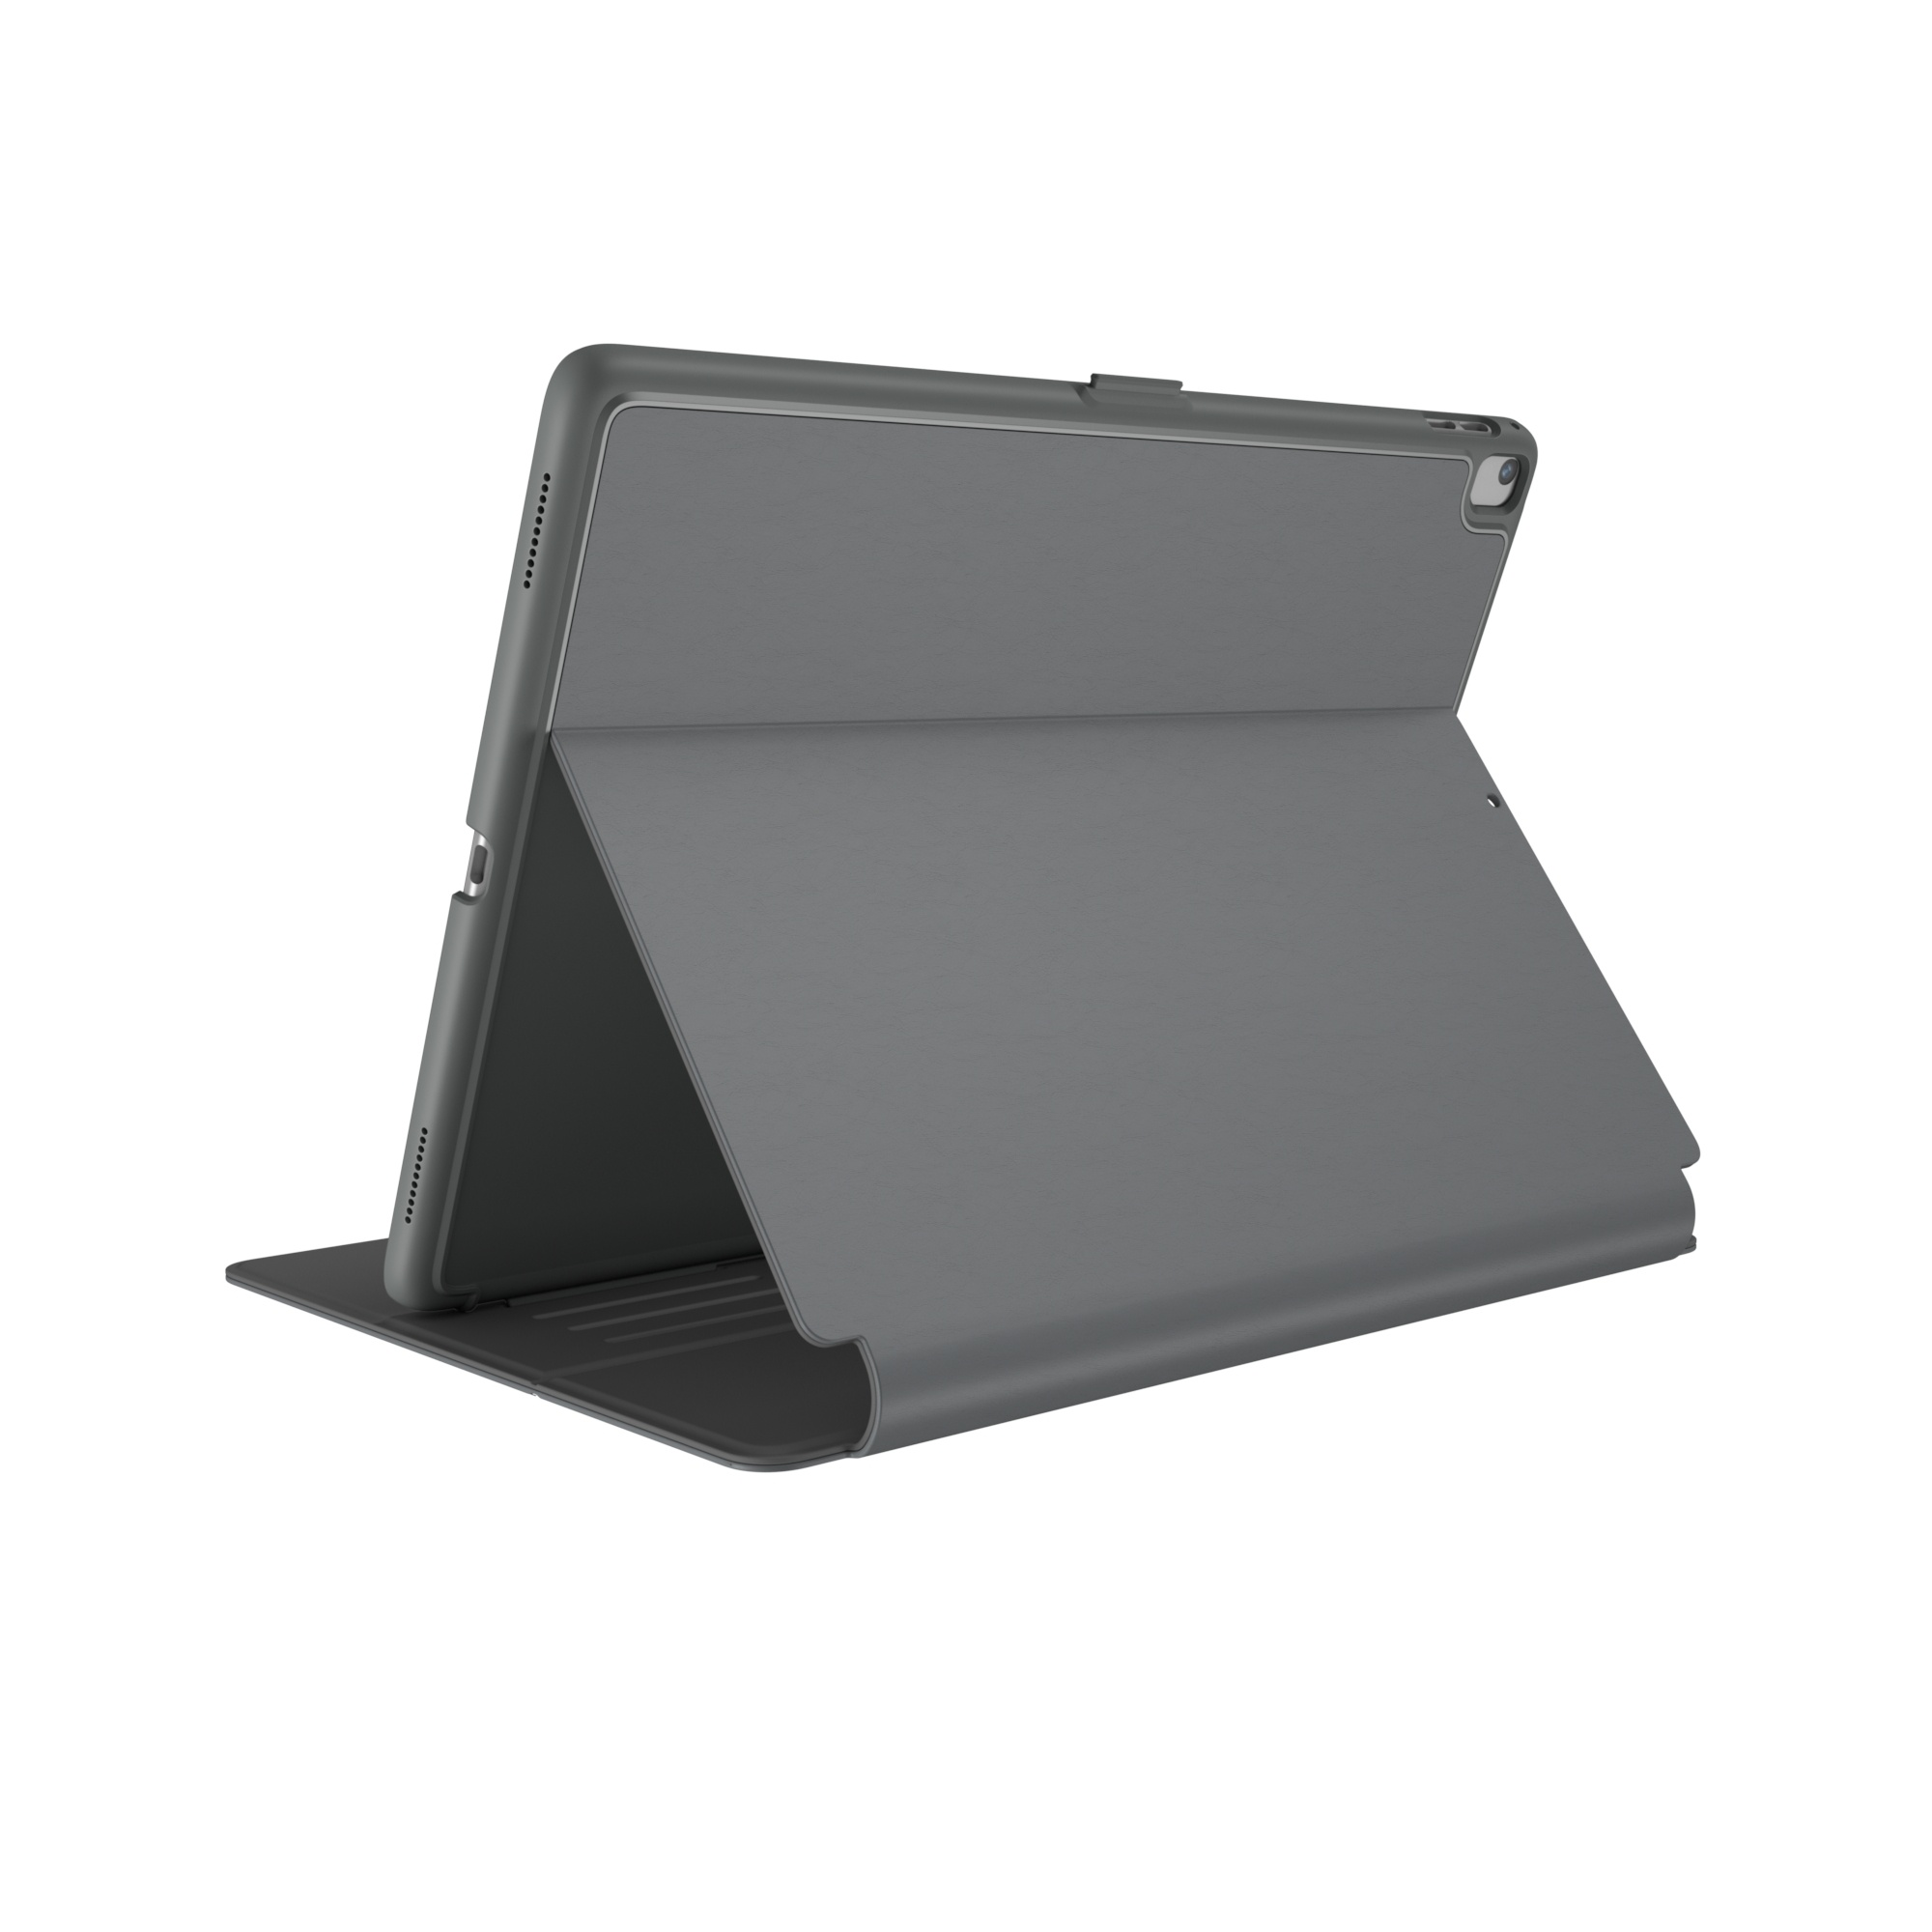 https://www.internet-toys.com/producten/large/speck_tablethoes_balance_folio_apple_ipad_air_air2_pro_9.7_grijs_297761_20190604183636.jpg